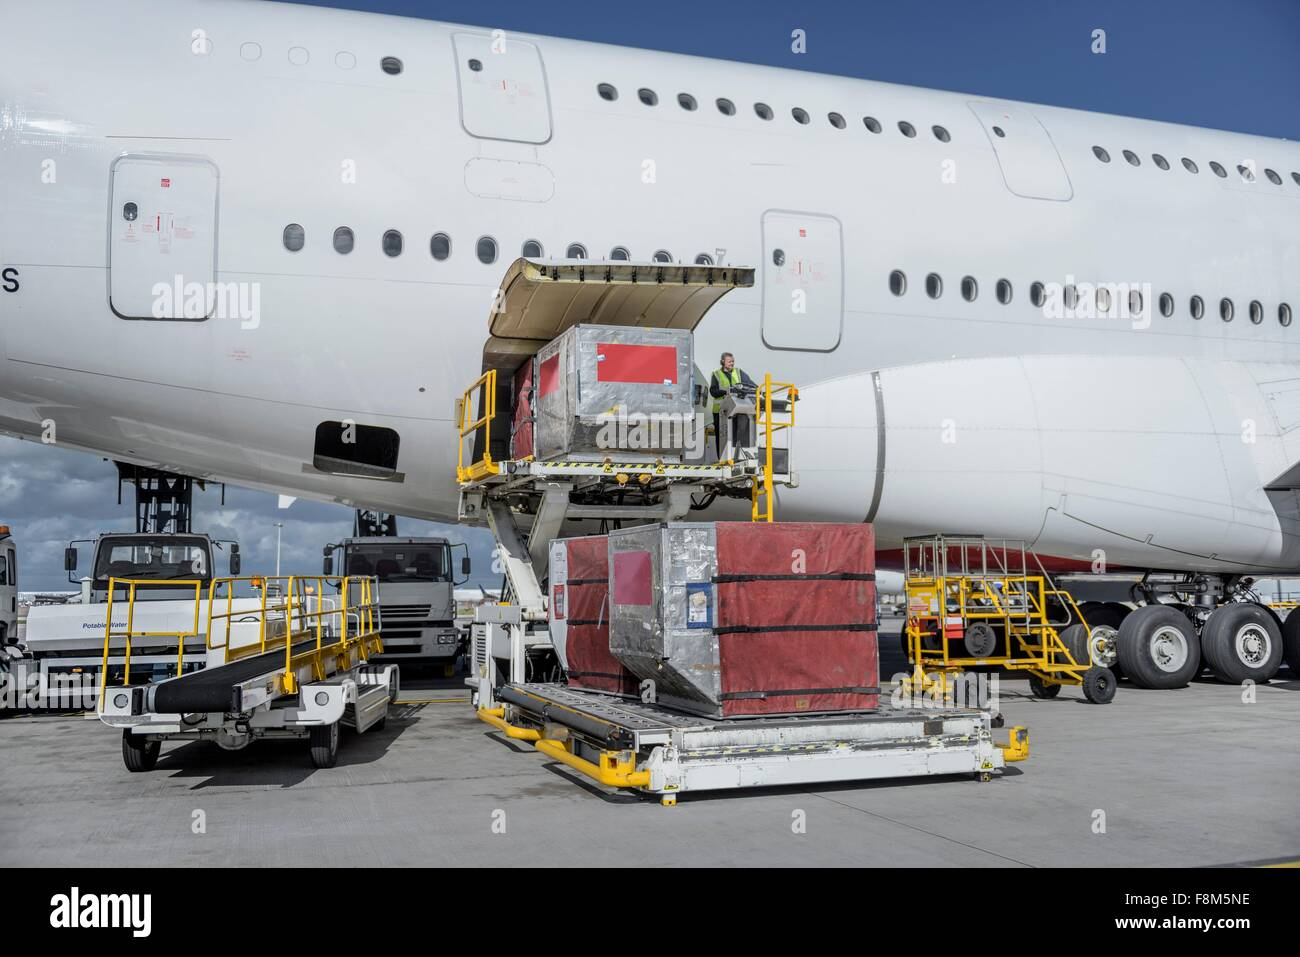 Ground crew loading freight and luggage into A380 aircraft - Stock Image